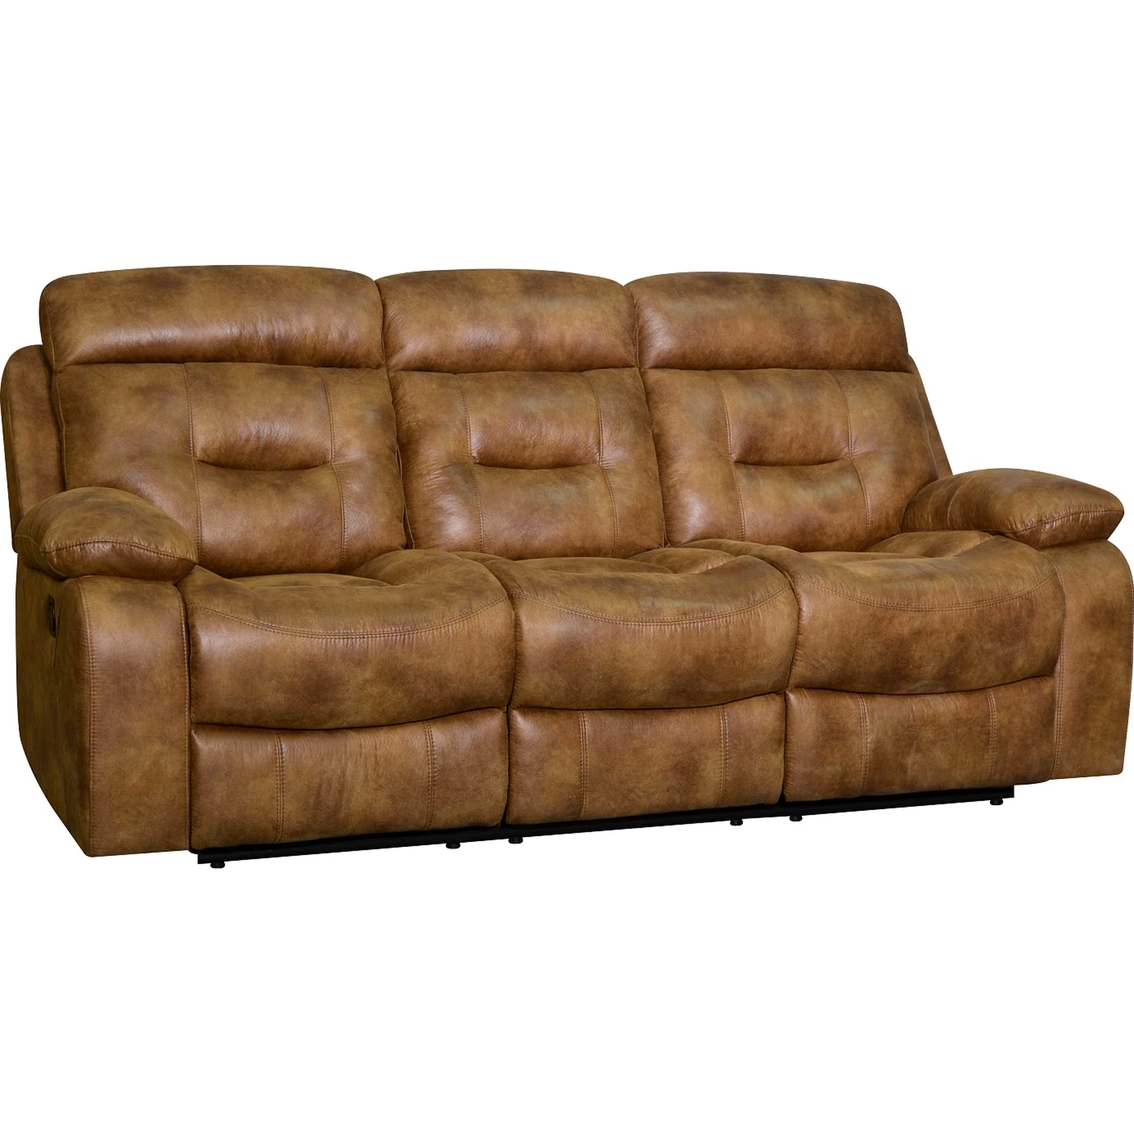 chesterfield collection klaussner nails small sectional traditional by fabulous ideas with of sofa brilliant tack flexsteel cool awesome sofas